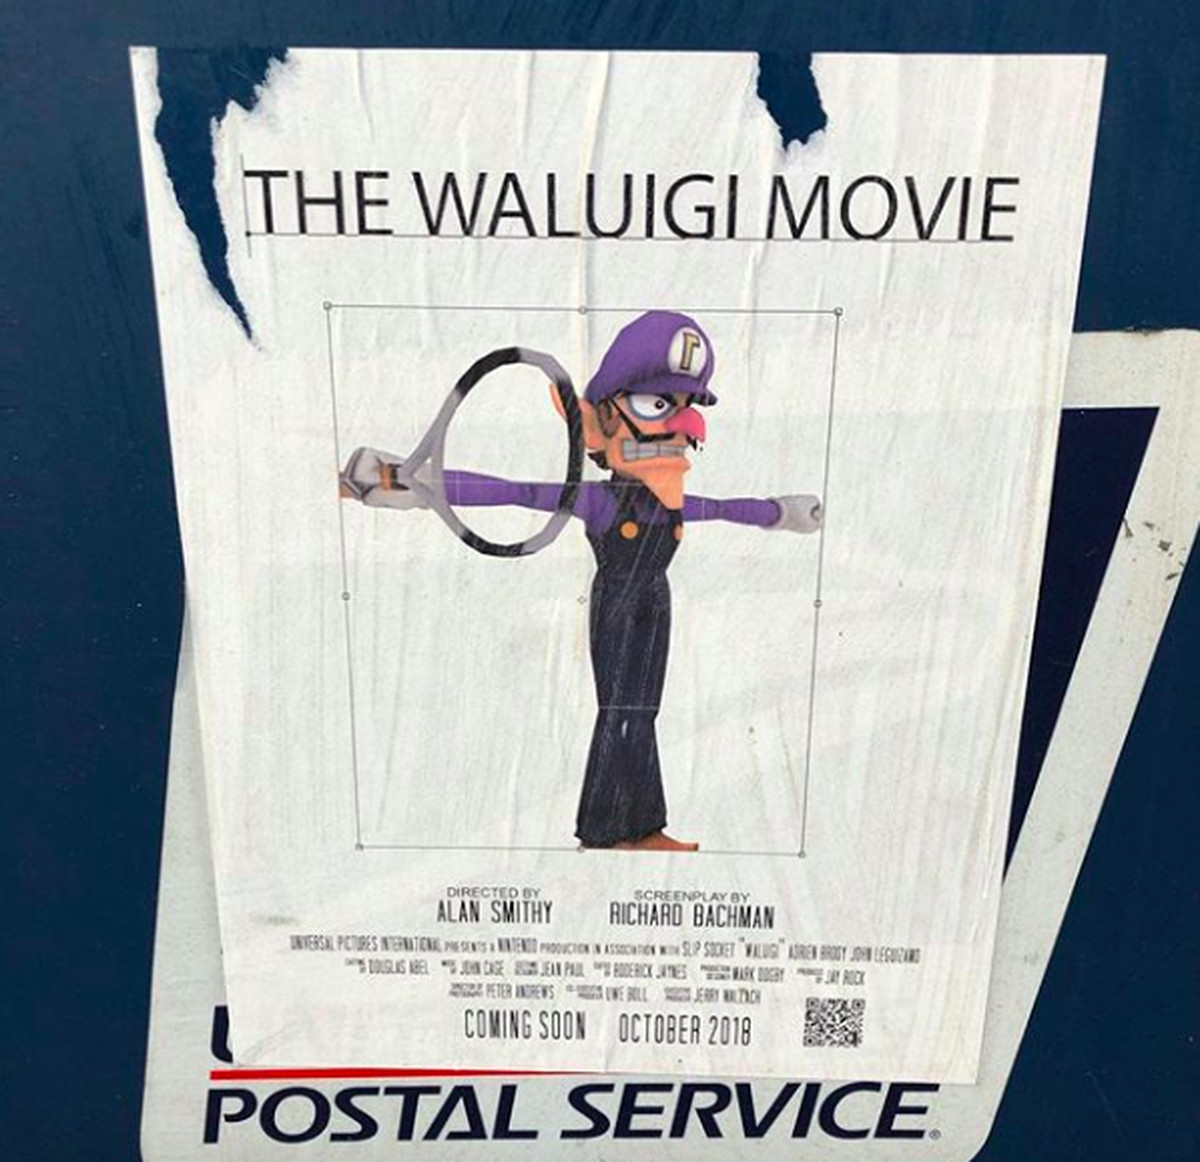 This masterpiece is not the Waluigi movie script we want ...